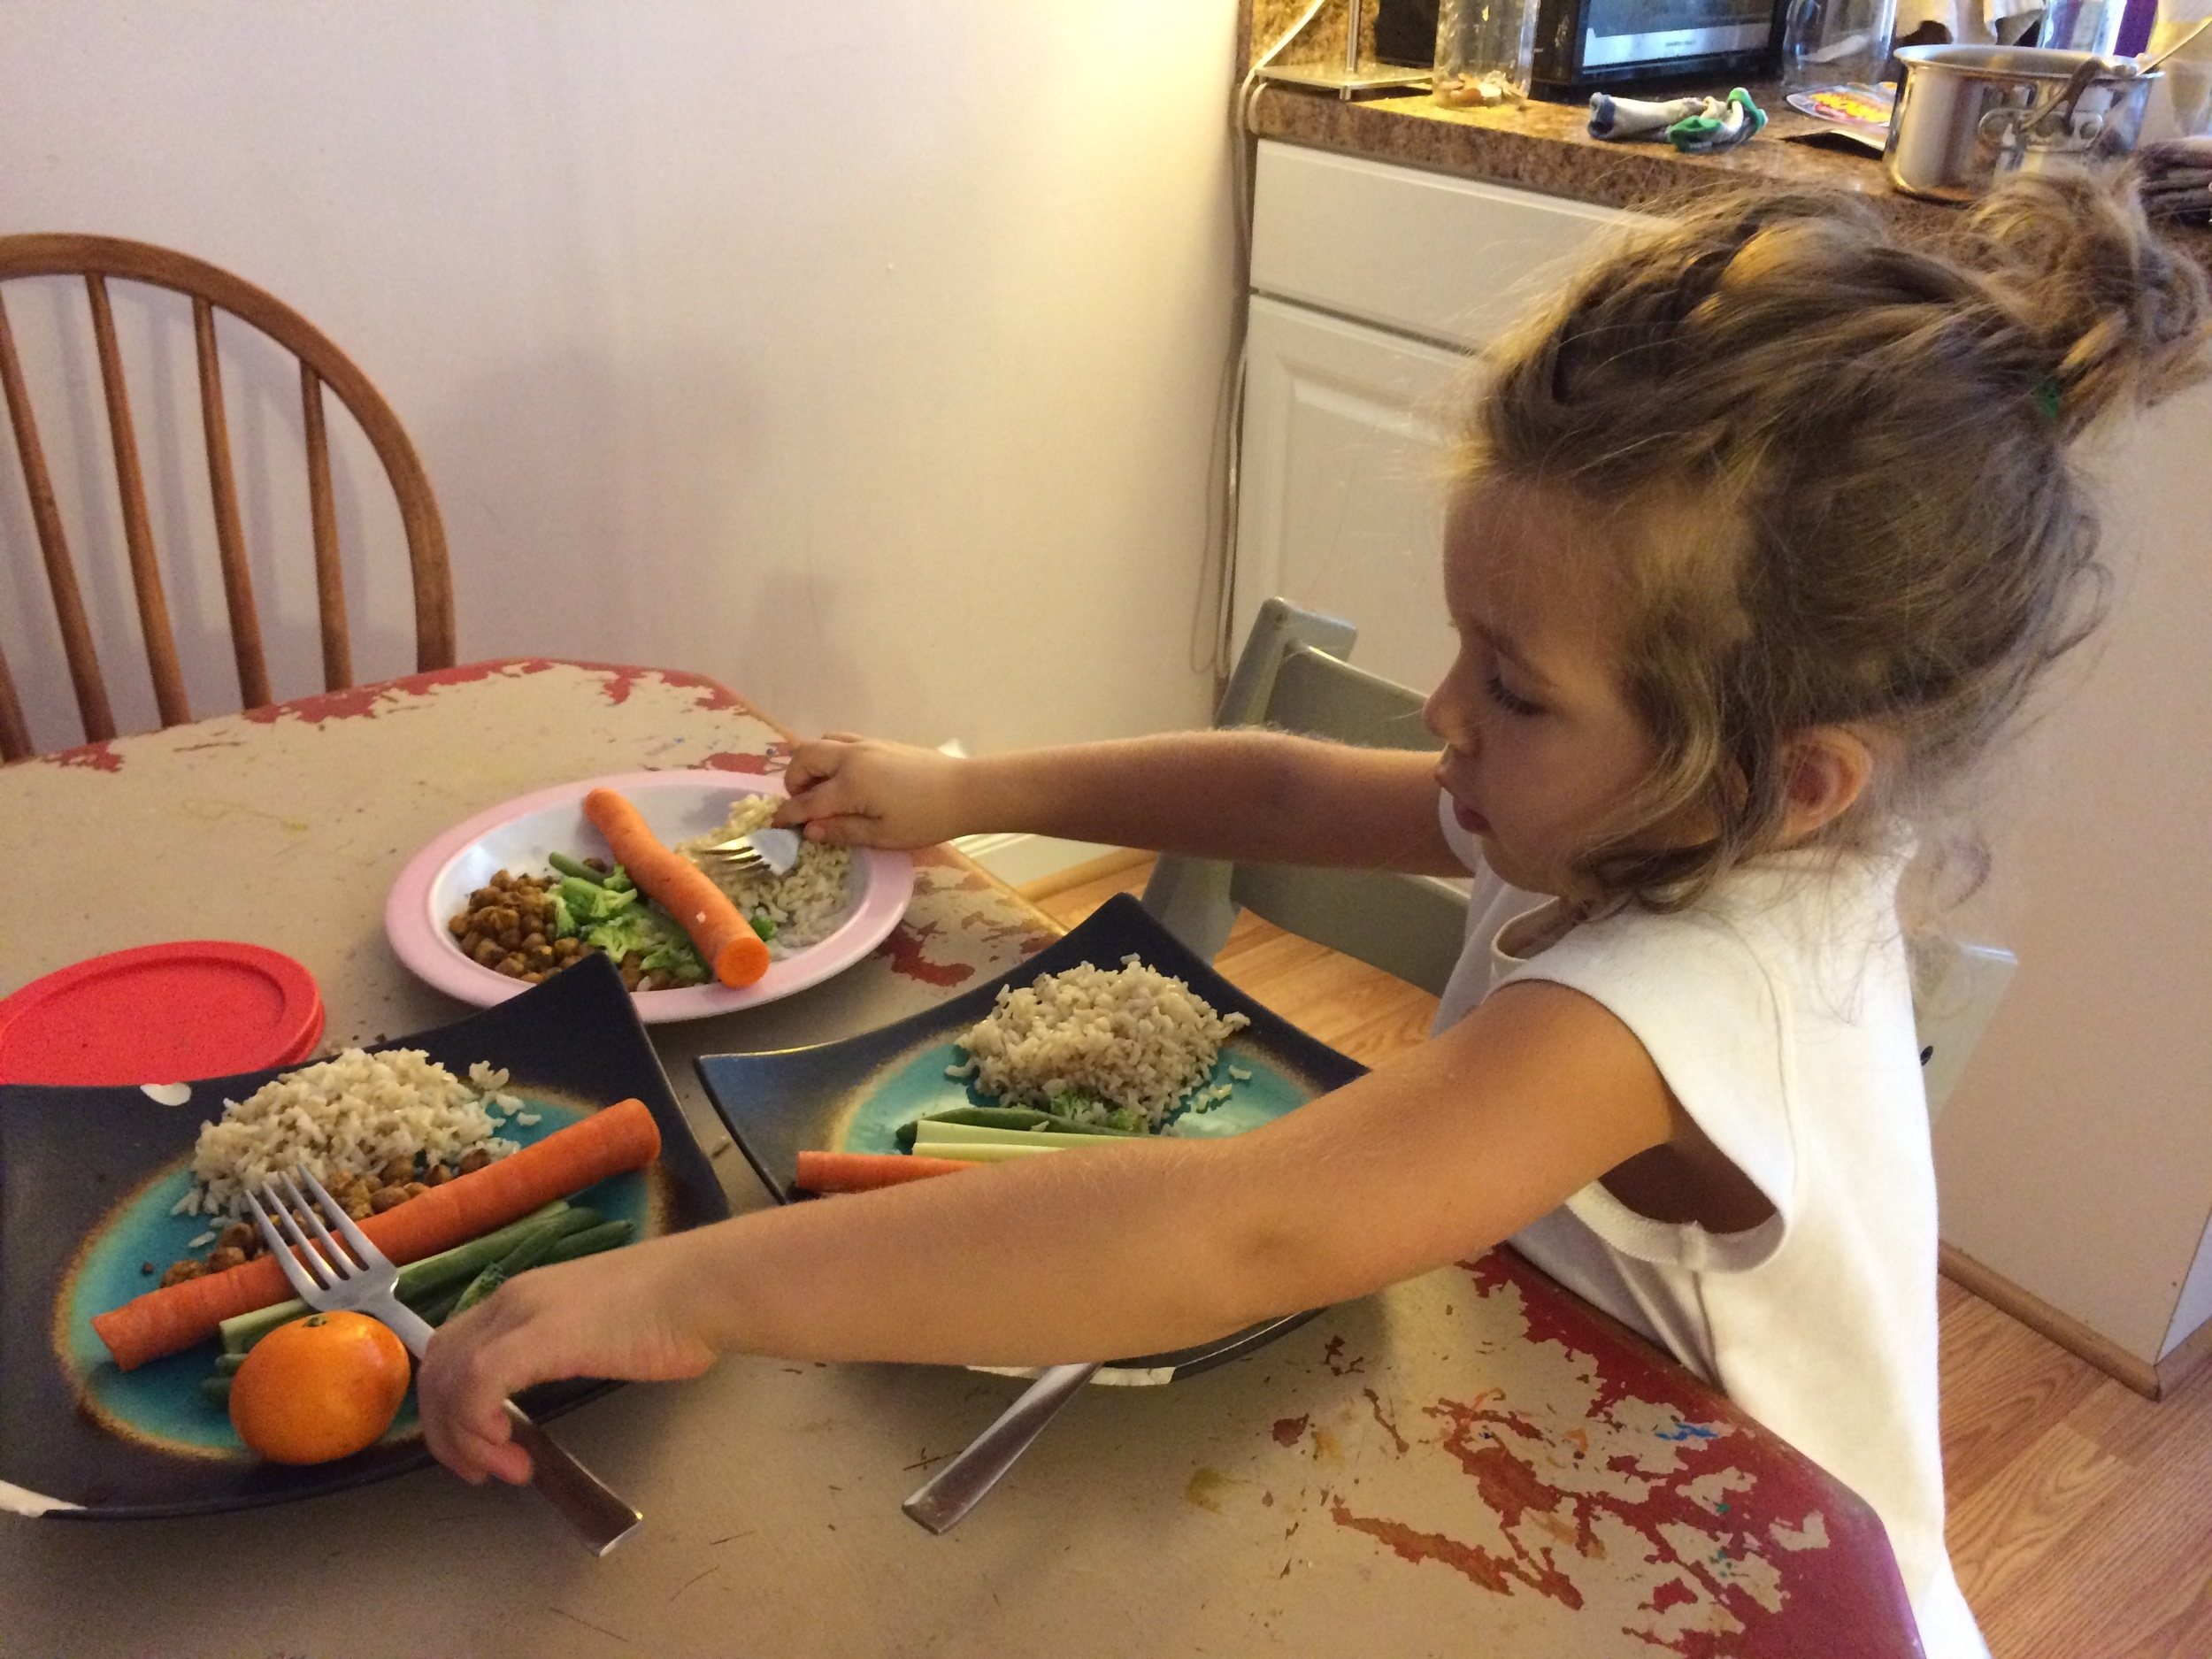 Judah preparing lunch for the family all by herself one day.